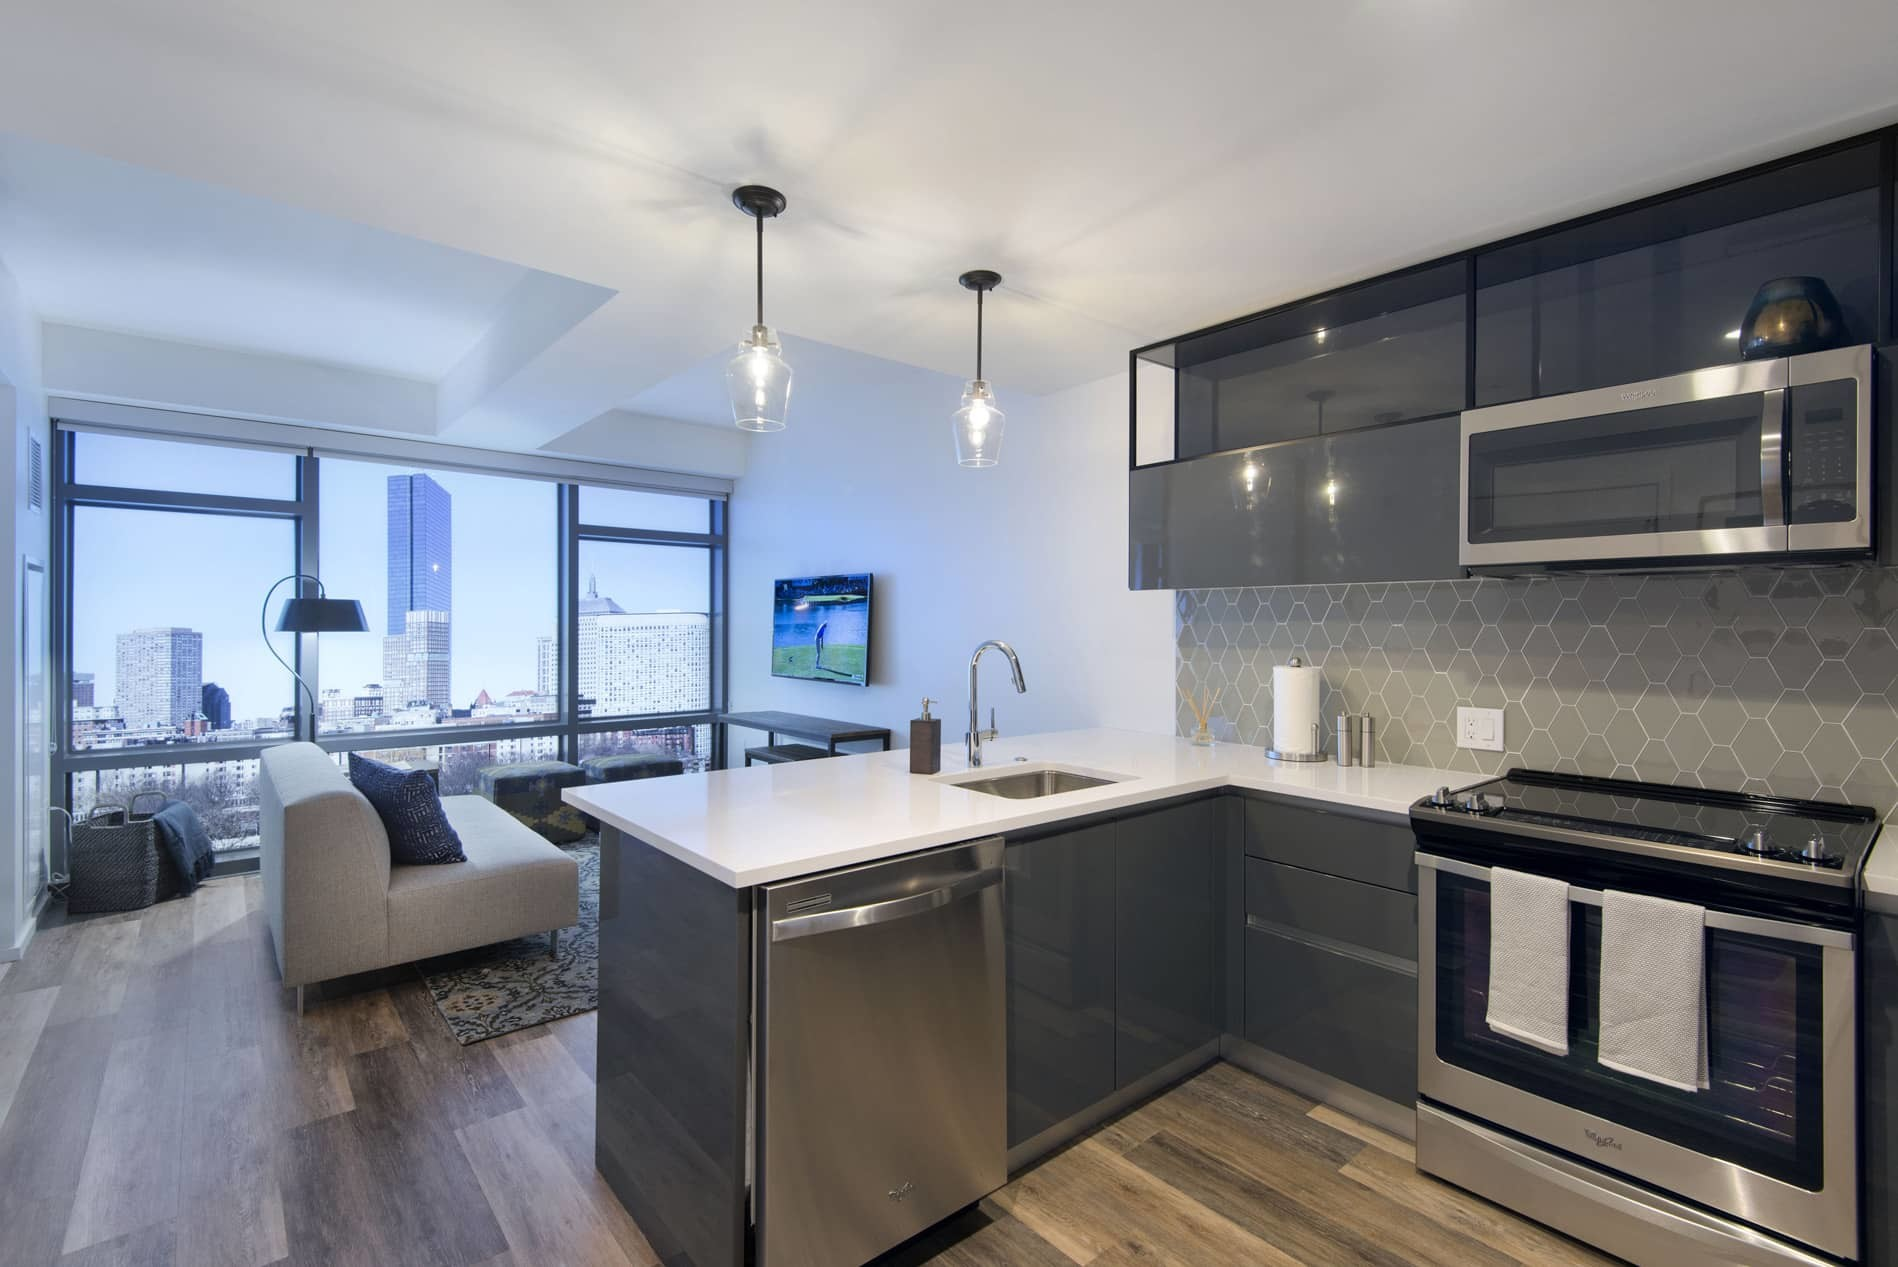 2 Beds, 2 Baths apartment in Boston, South End for $5,256